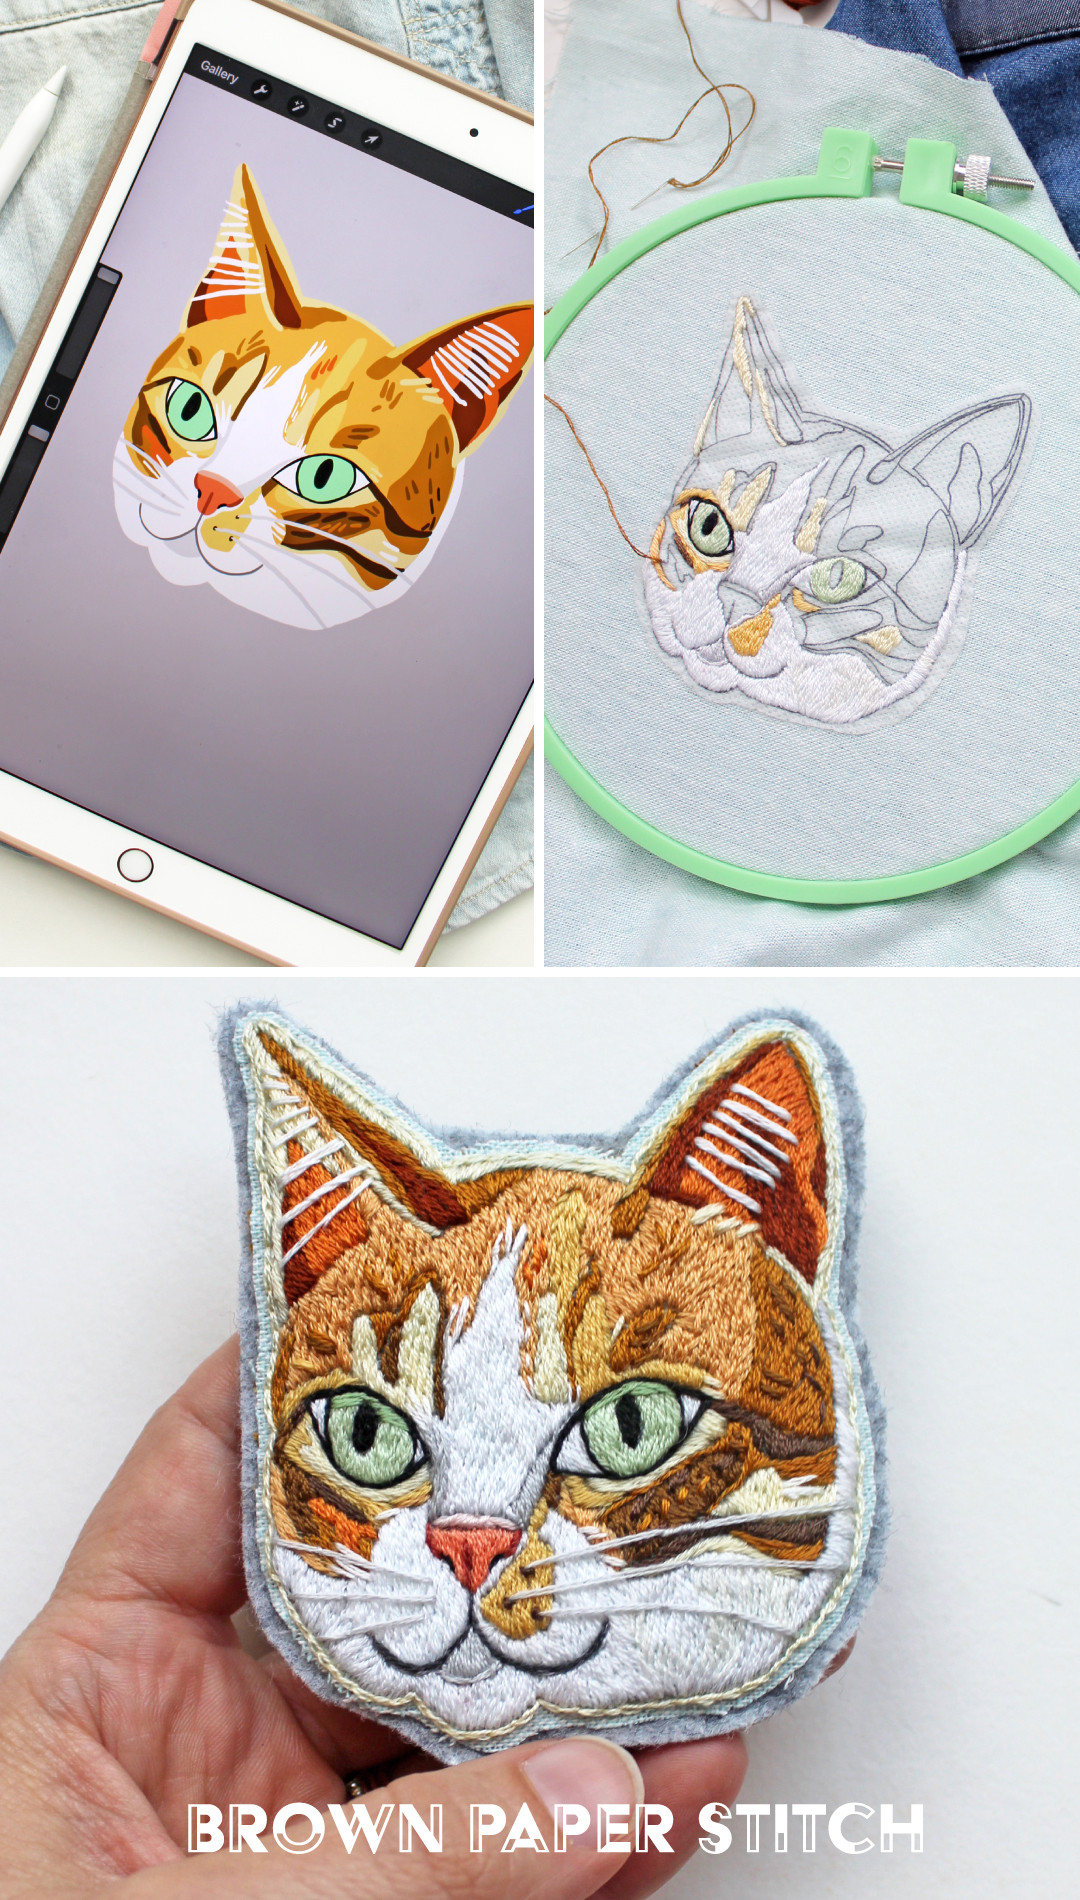 Celebrate Your Furry Friend With This Custom Embroidered Patch [Dispatches From Brown Paper Stitch]